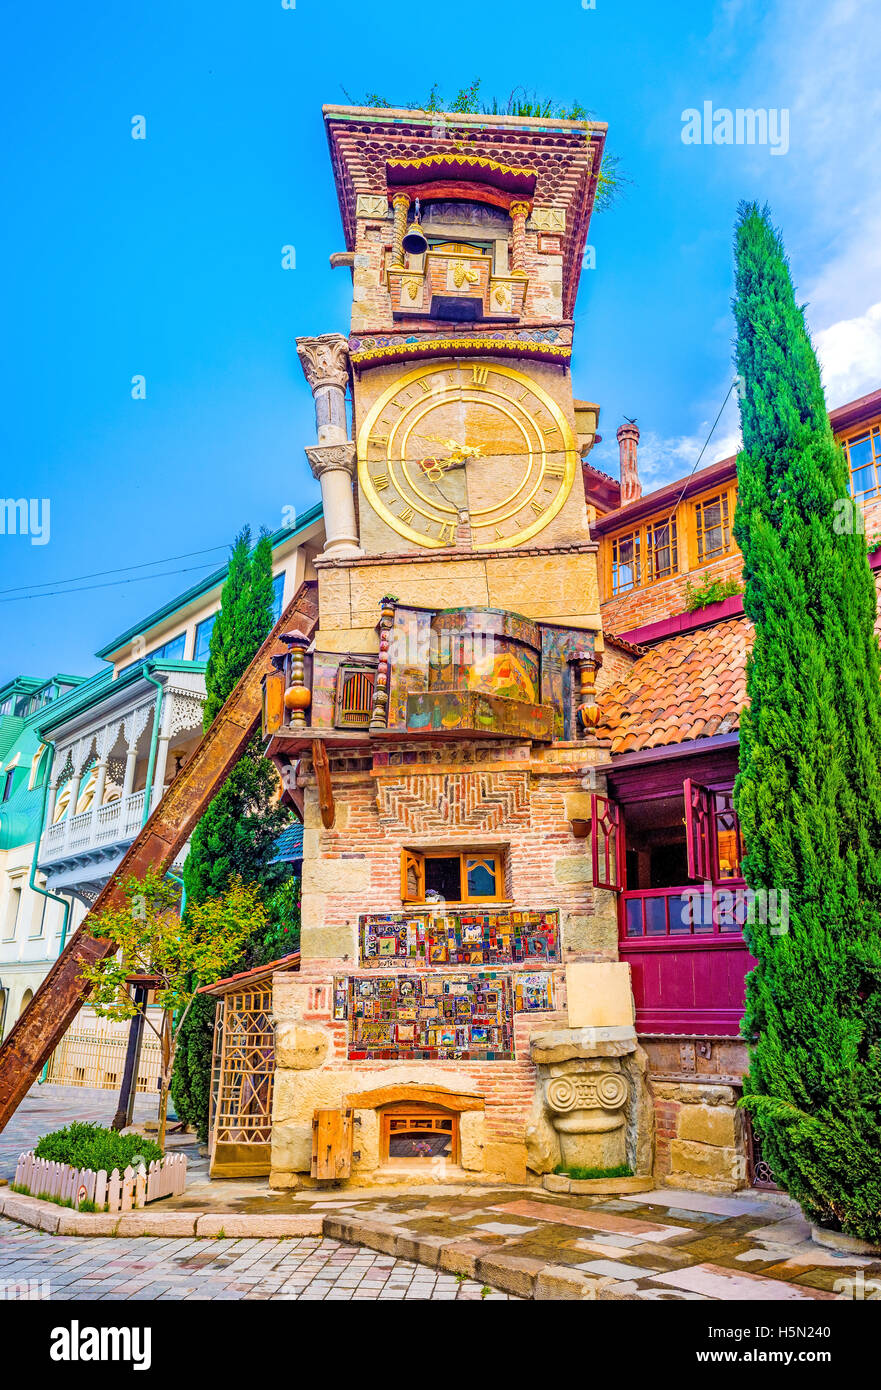 The unusual leaning tower of the Puppet Theatre attracts the tourists to visit Shavteli street and enjoy the view, - Stock Image